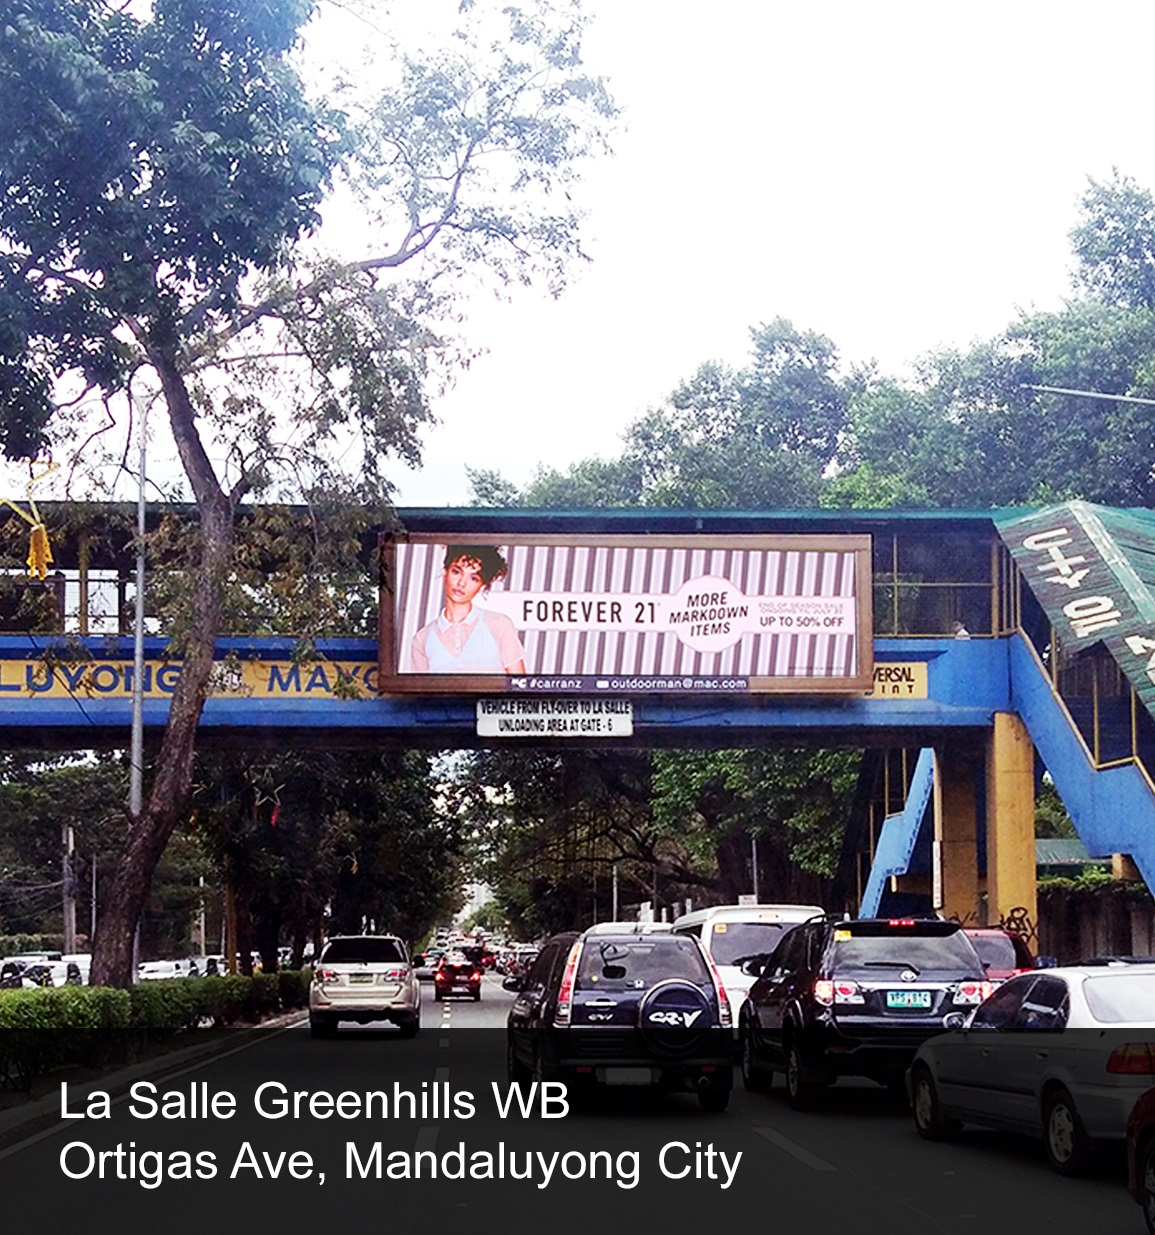 Dooh-ph-lasalle-greenhills-westbound-led-billboard-in-edsa.jpg